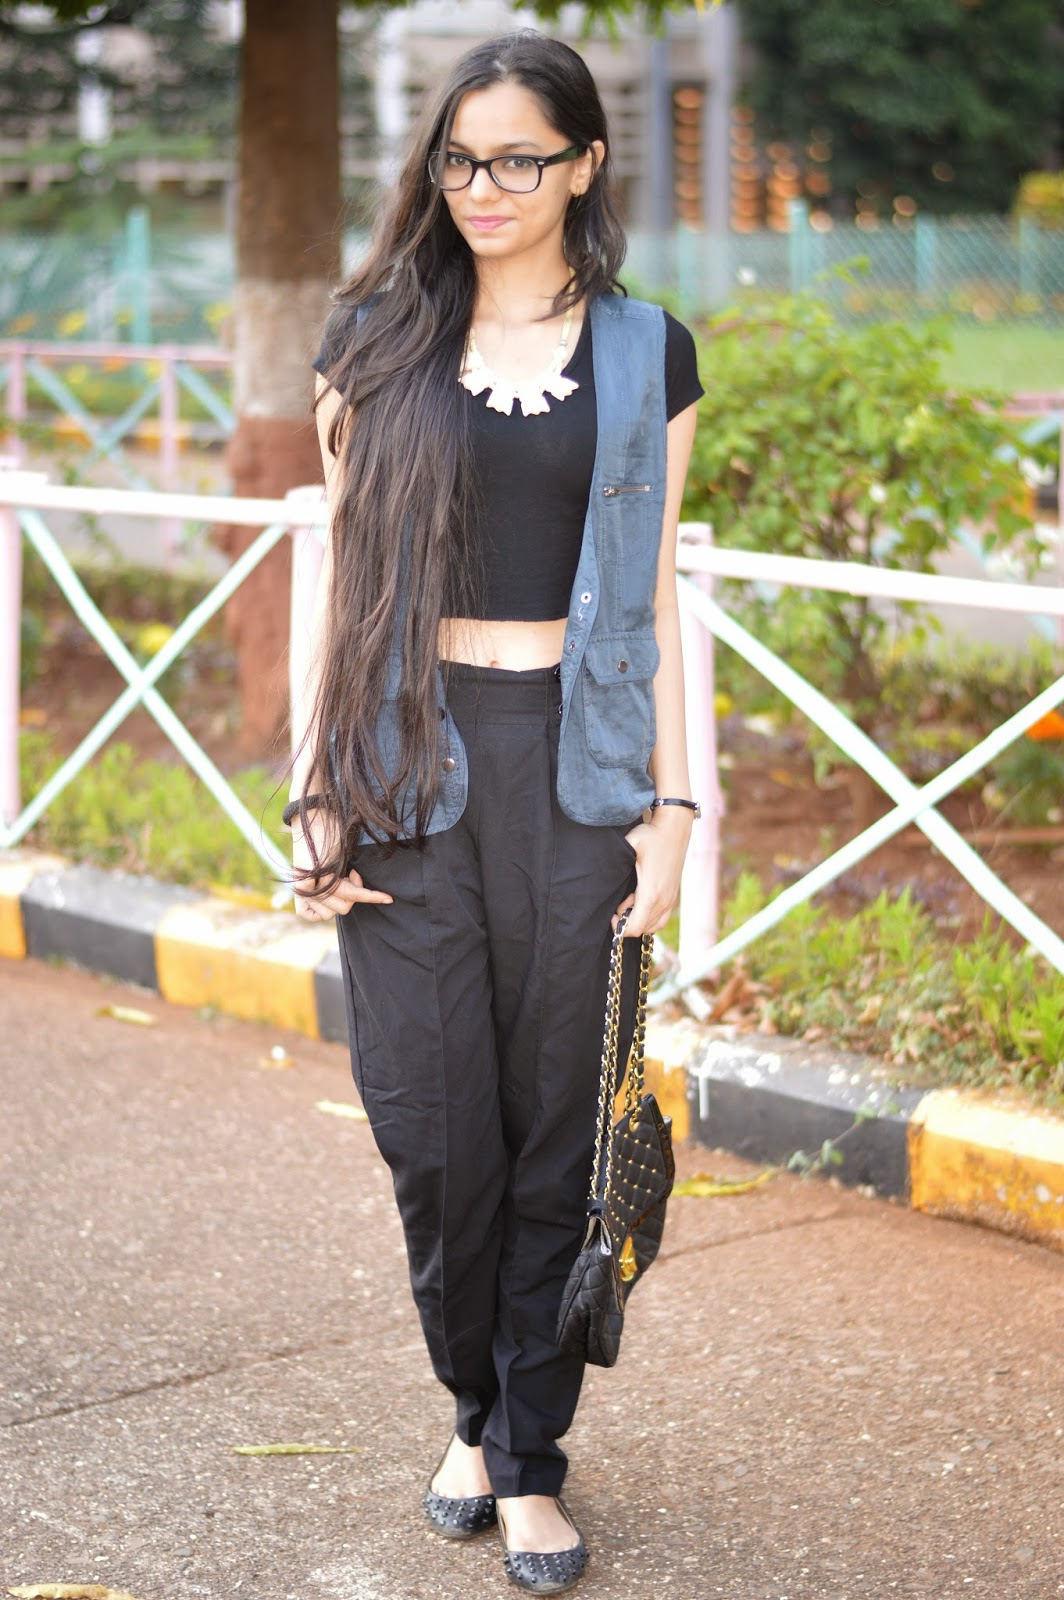 long hair, indian fashion blogger, how to wear a crop top, how to wear high waisted pants, asos high waist pants, how to wear a vest, mumbai streetstyle, colaba causeway street shopping, what to buy in mumbai, where to shop in mumbai, lenskart oversized glasses